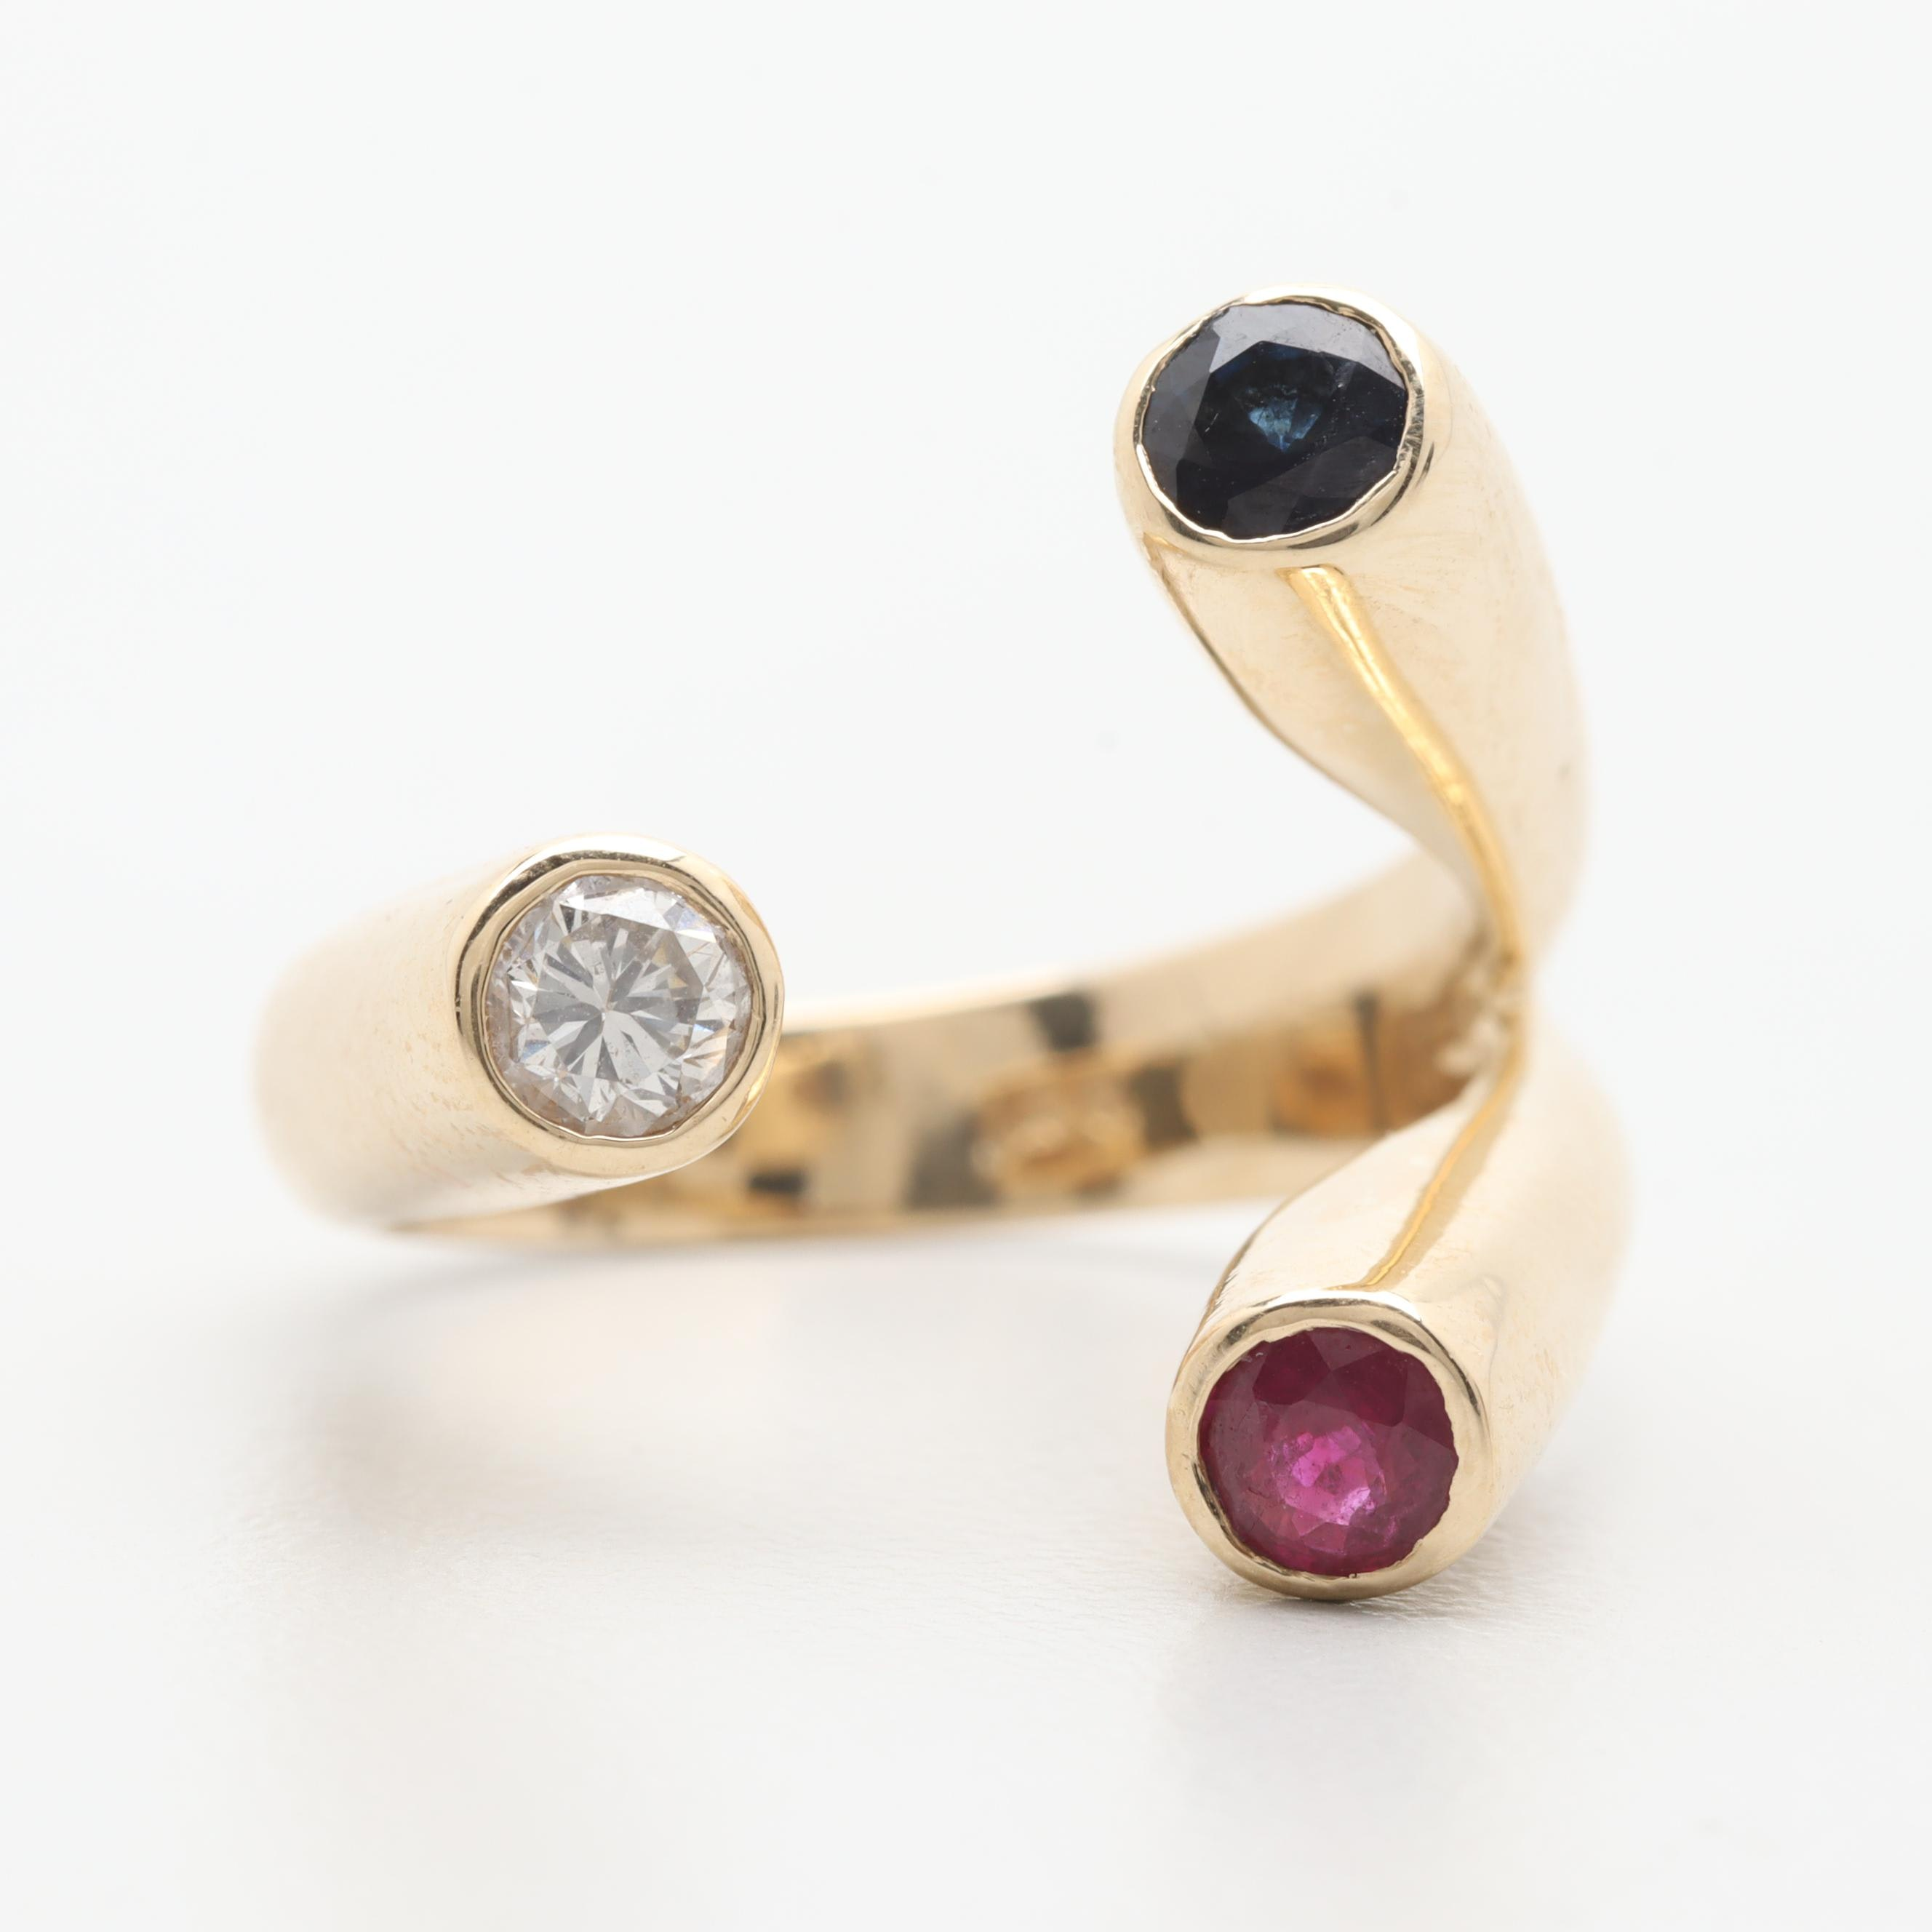 Contemporary 14K Yellow Gold Diamond, Ruby and Sapphire Ring